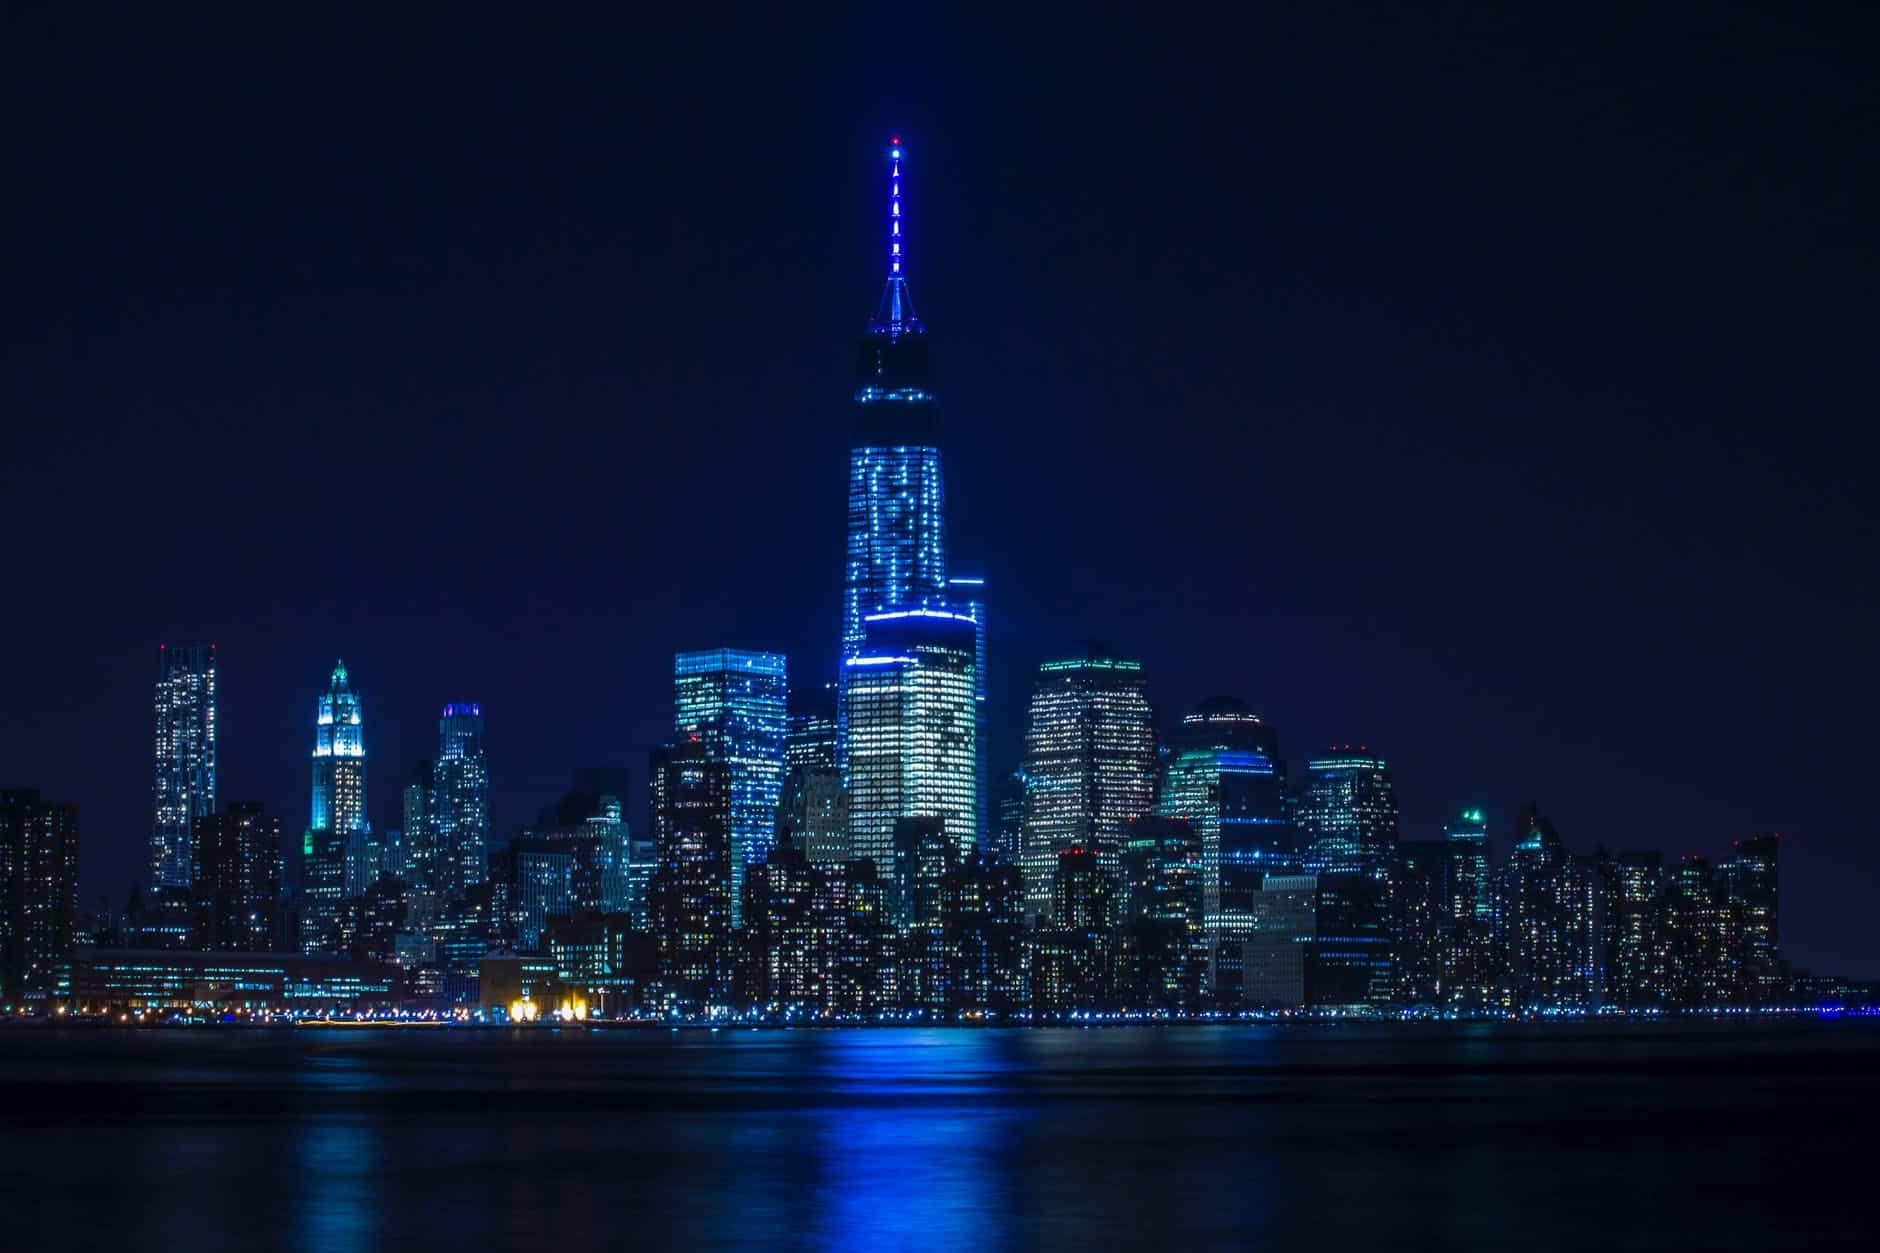 buildings with blue light